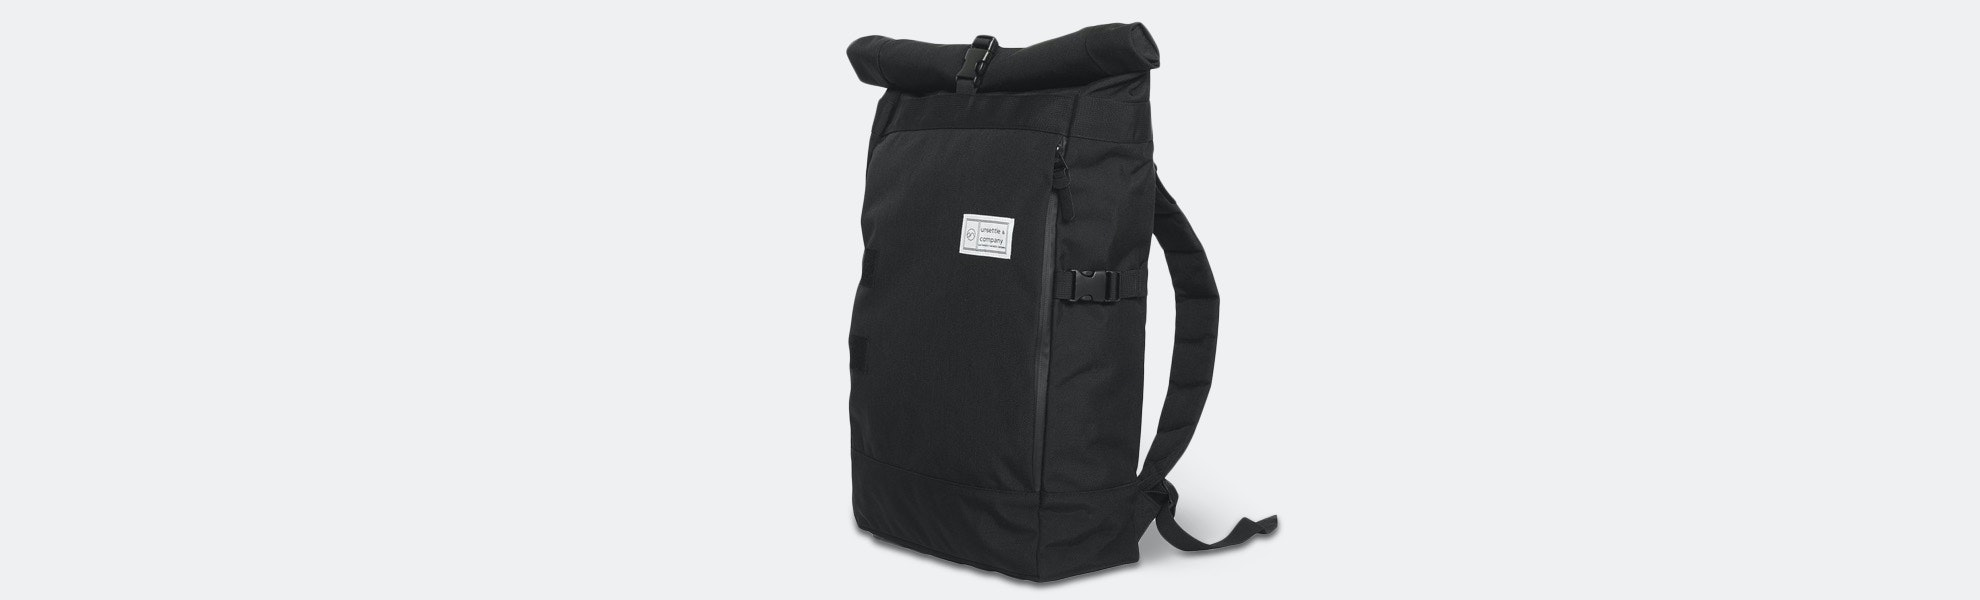 Unsettle & Co. Commuter Roll-Top Backpack 2.0